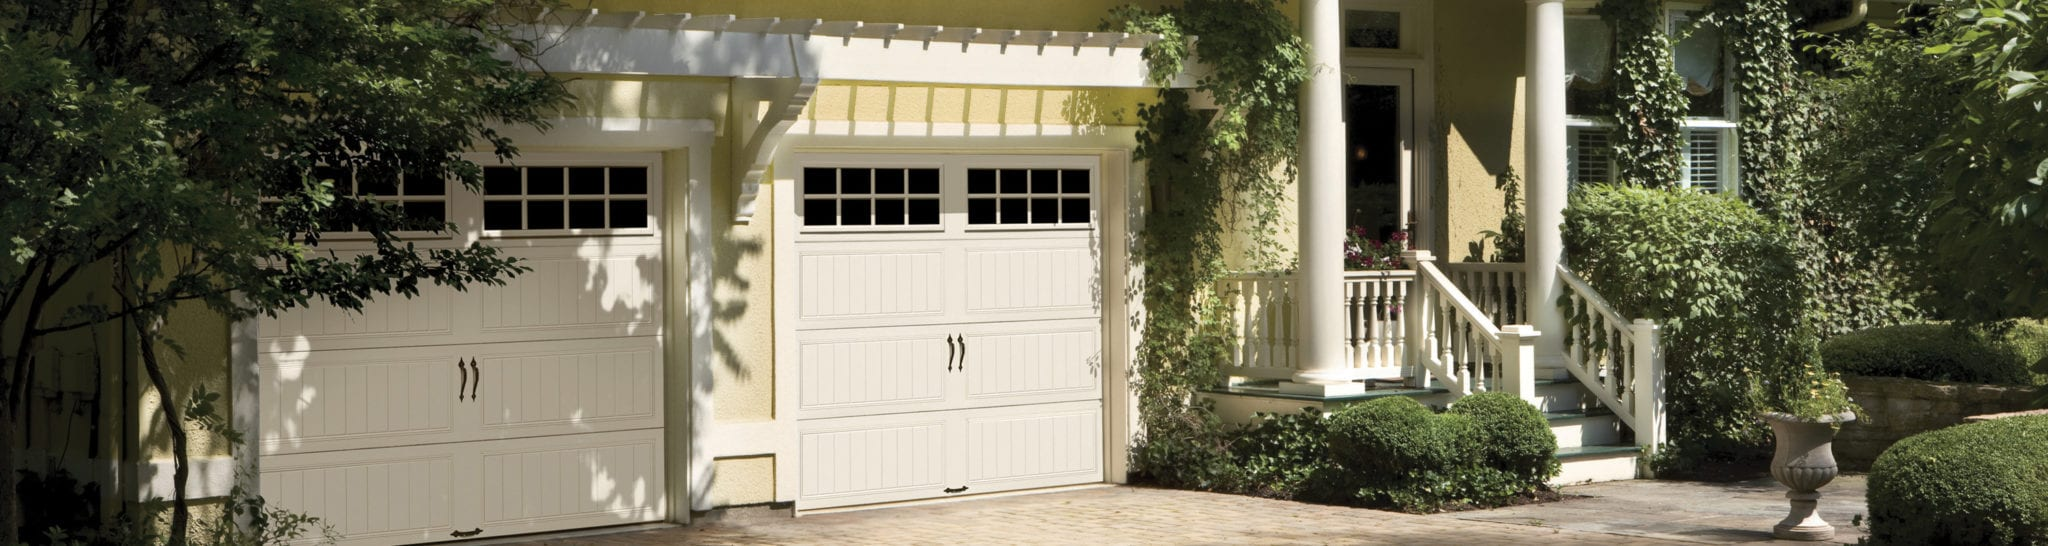 Residential Garage Door Lines